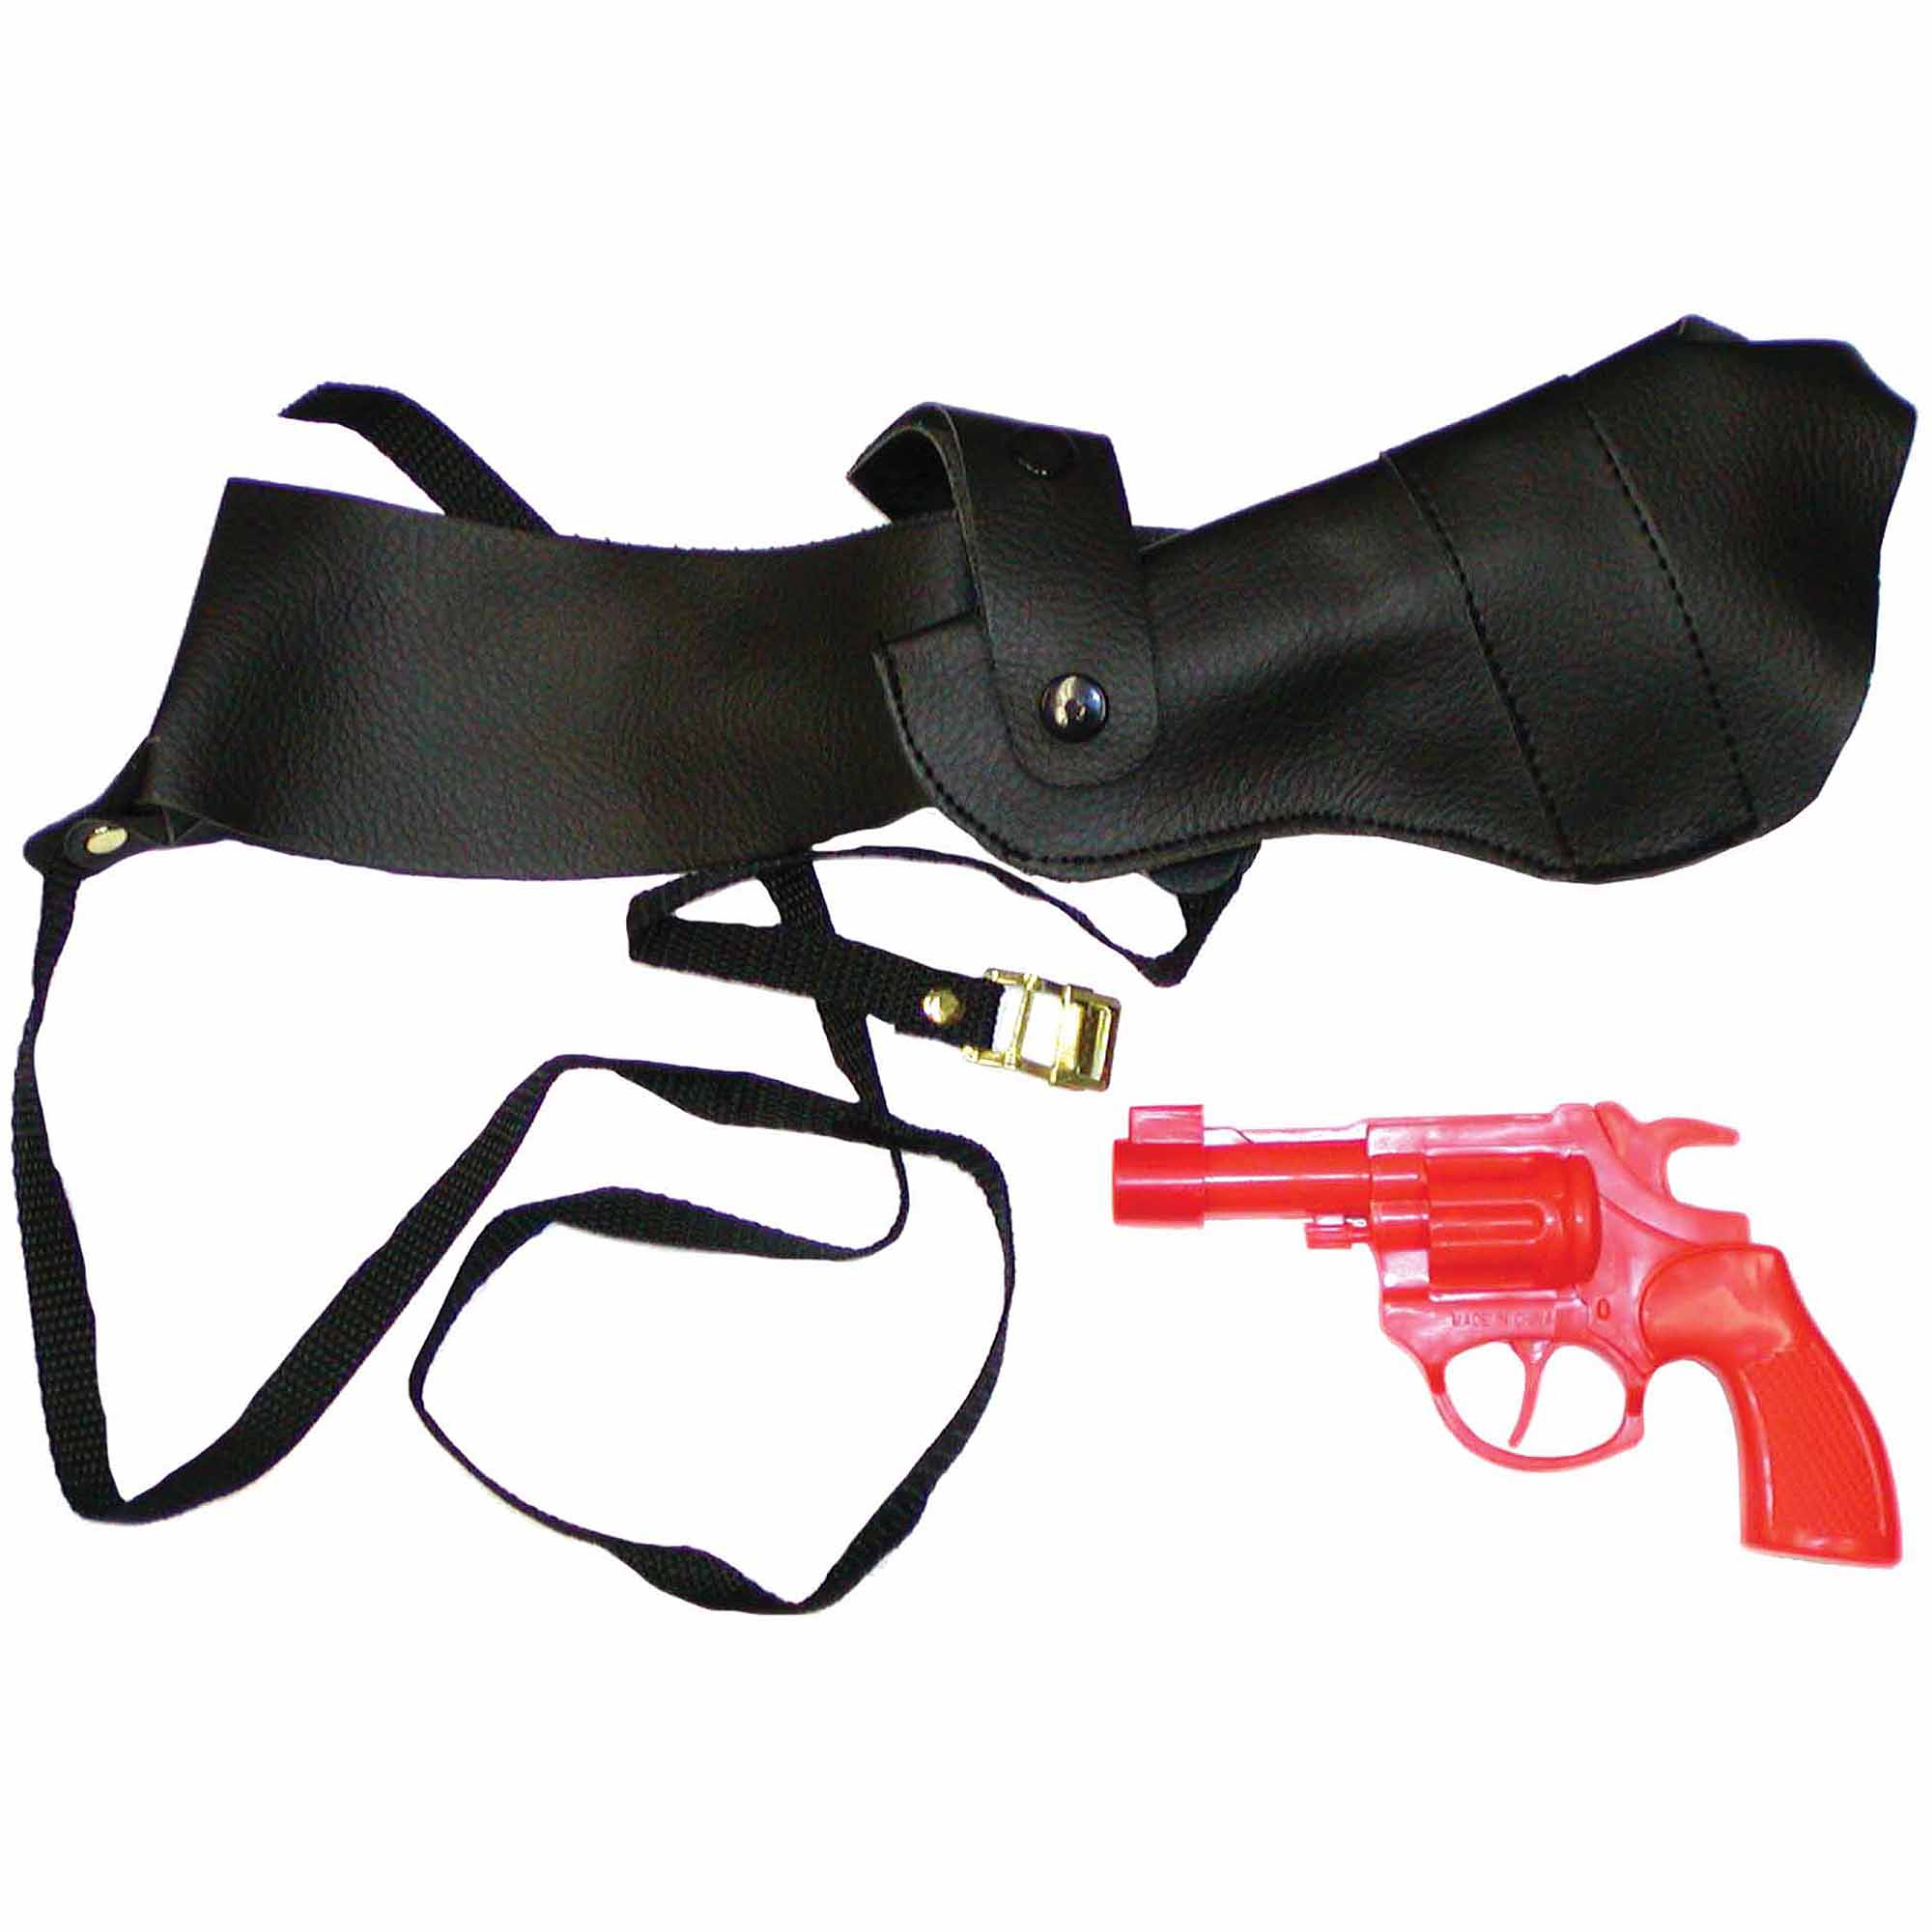 Shoulder Holster with Gun Adult Halloween Accessory